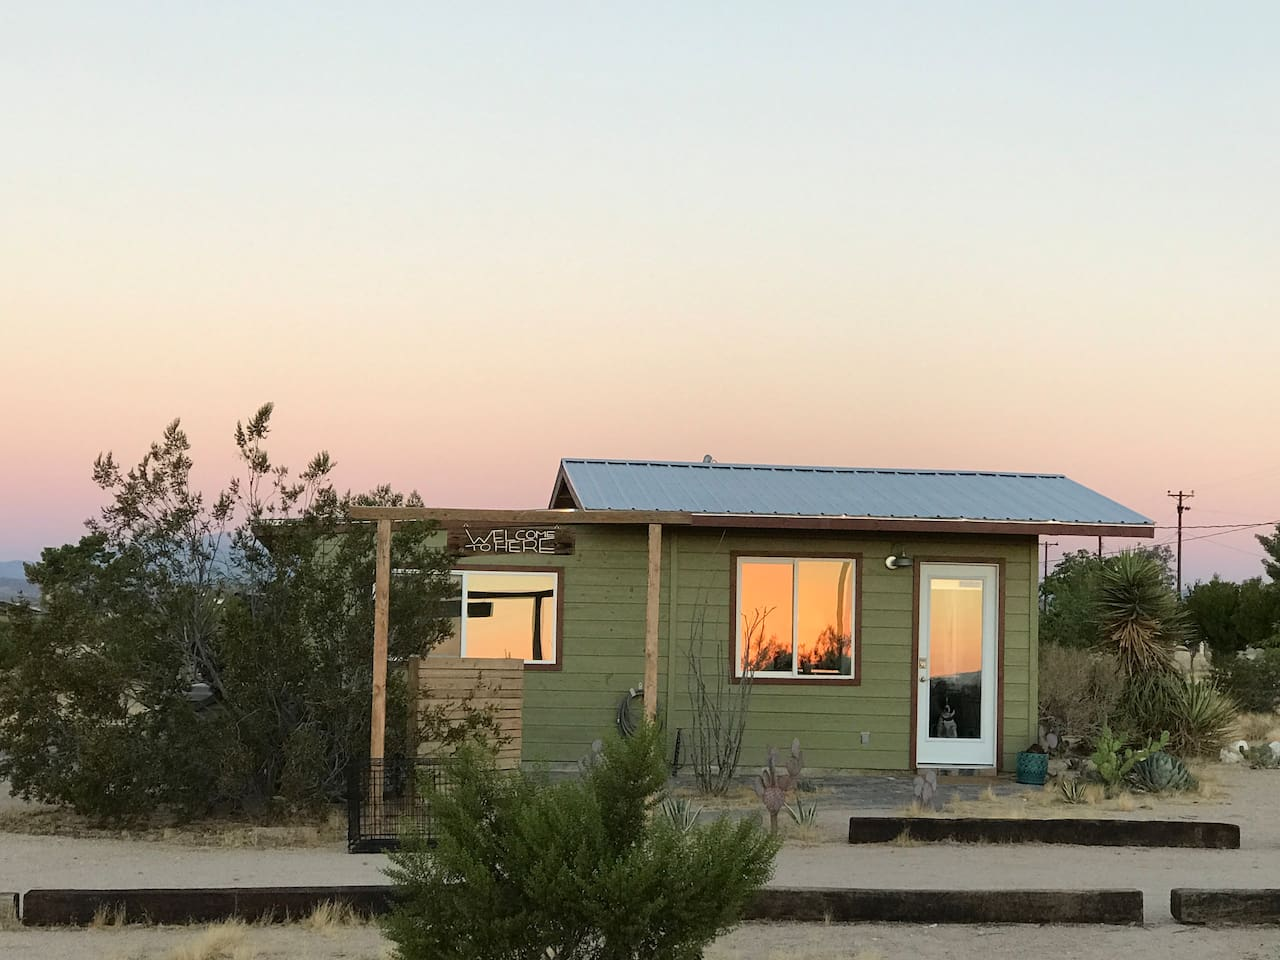 MOJAVE GREEN cabin at sunrise. Railroad ties line the driveway and a pathway leads up to the front door where you access the cabin with a door code.